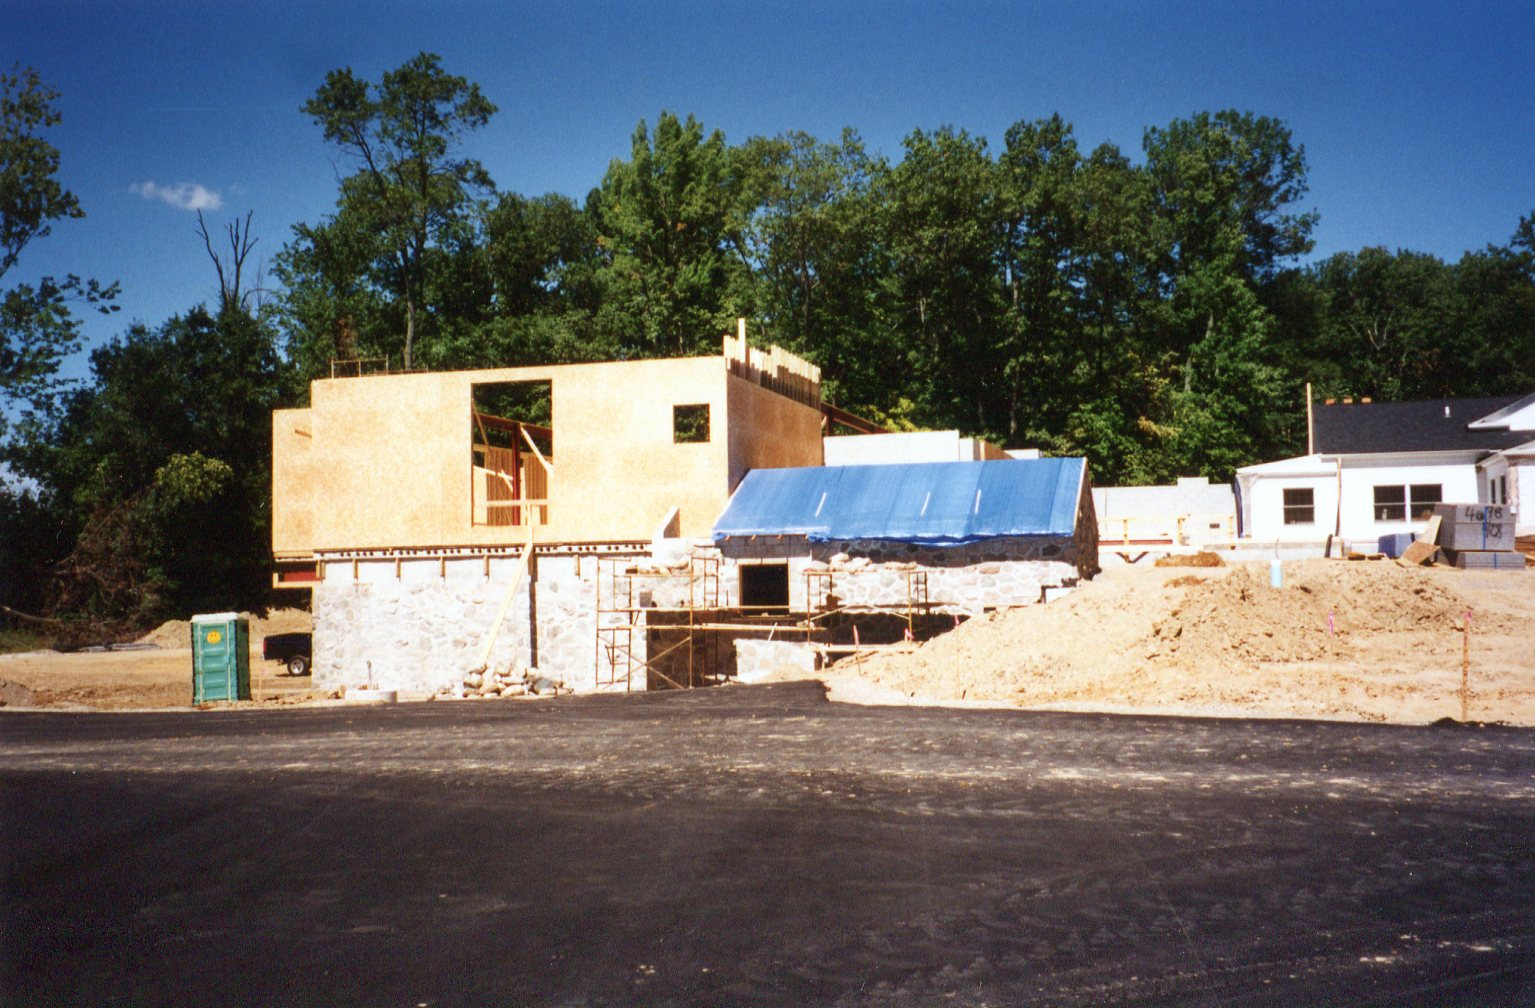 the library building under construction